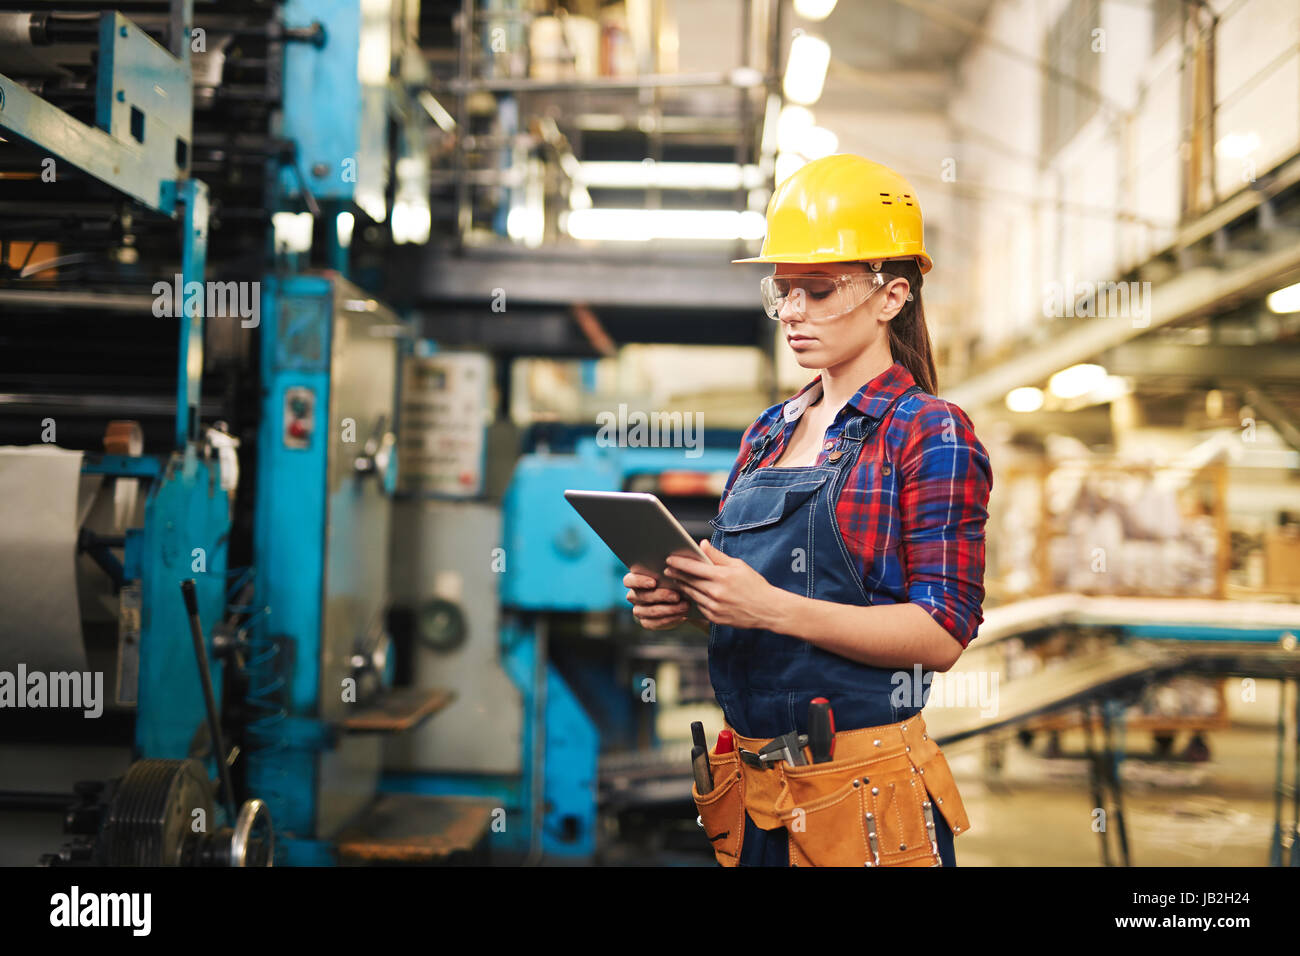 Making Inventory in Modern Plant - Stock Image